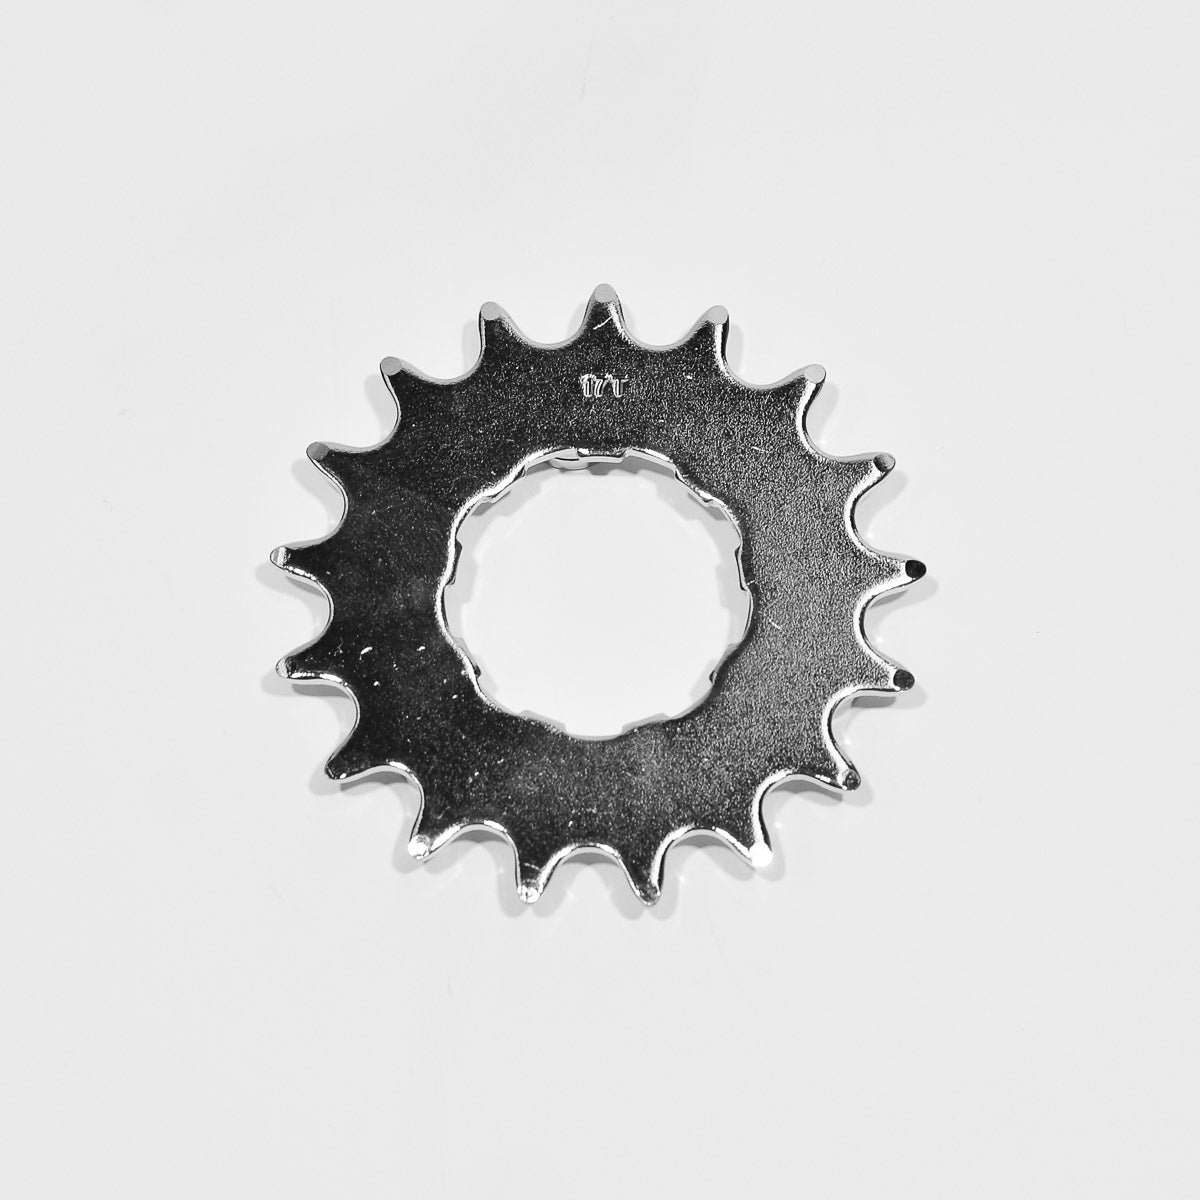 Cassettes, Freewheels & Cogs New Bmx 16t Steel Single Speed Rear Cog Sporting Goods